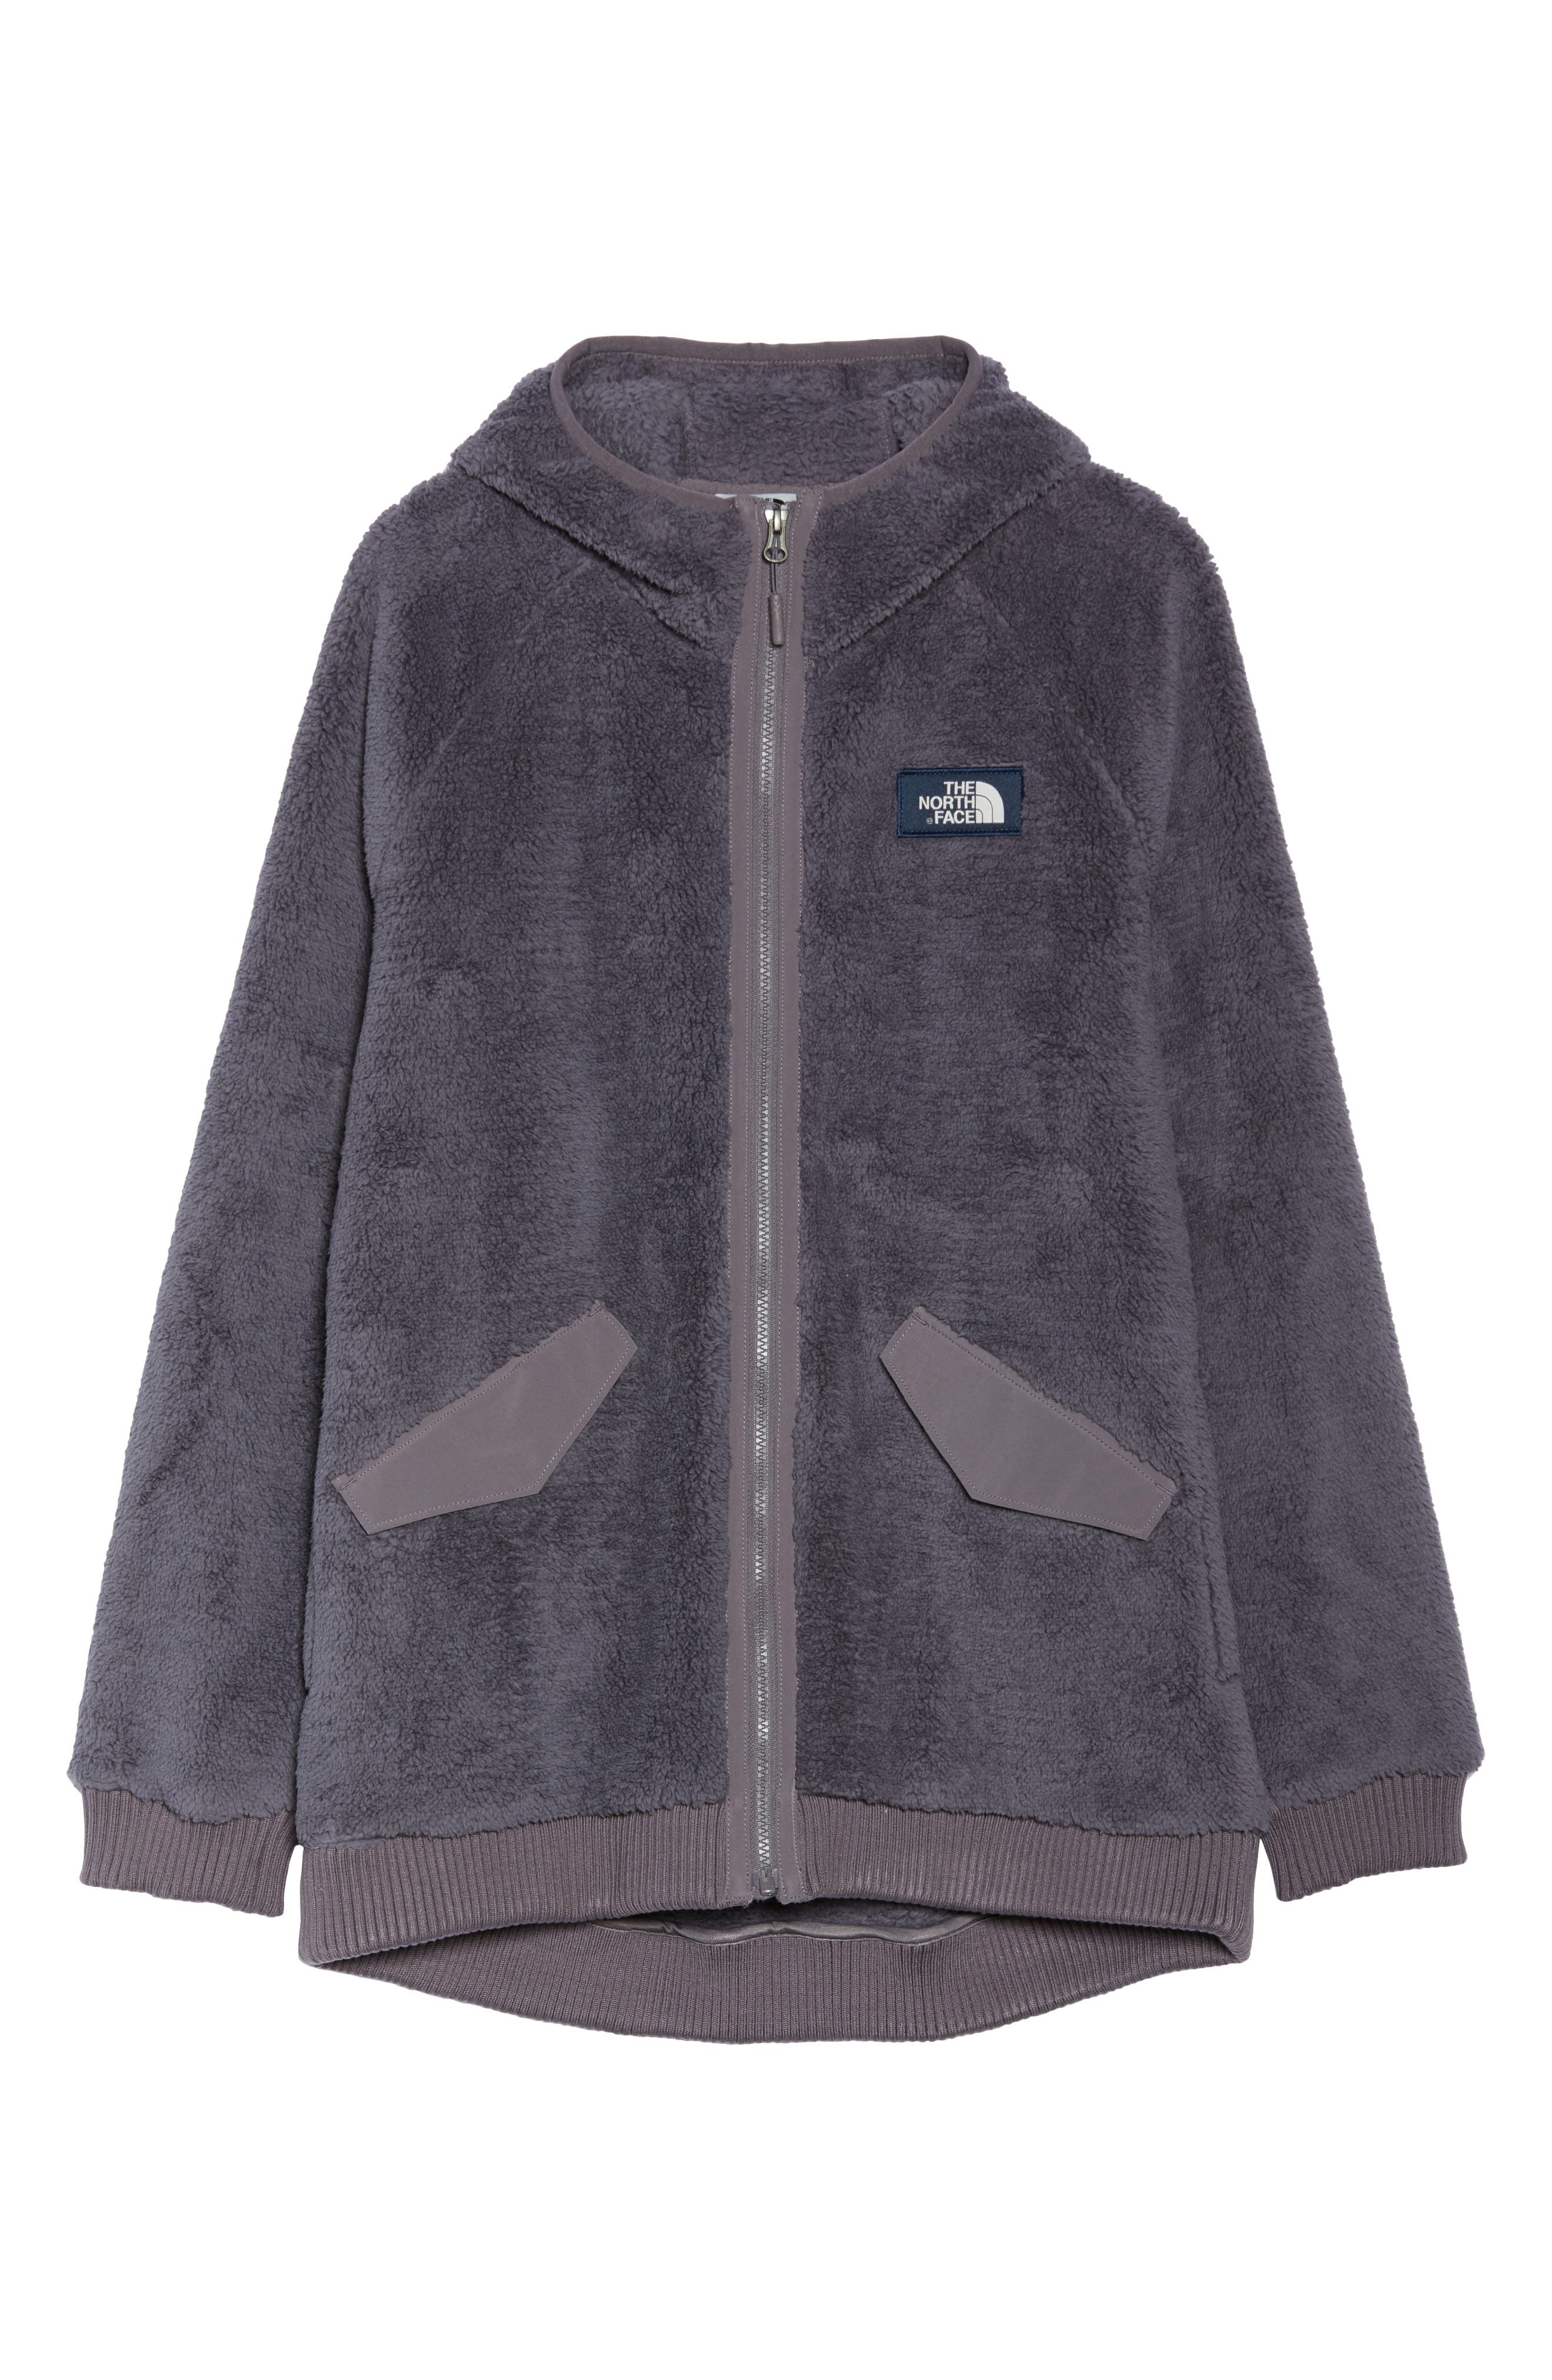 Campshire Bomber Jacket,                             Alternate thumbnail 6, color,                             RABBIT GREY